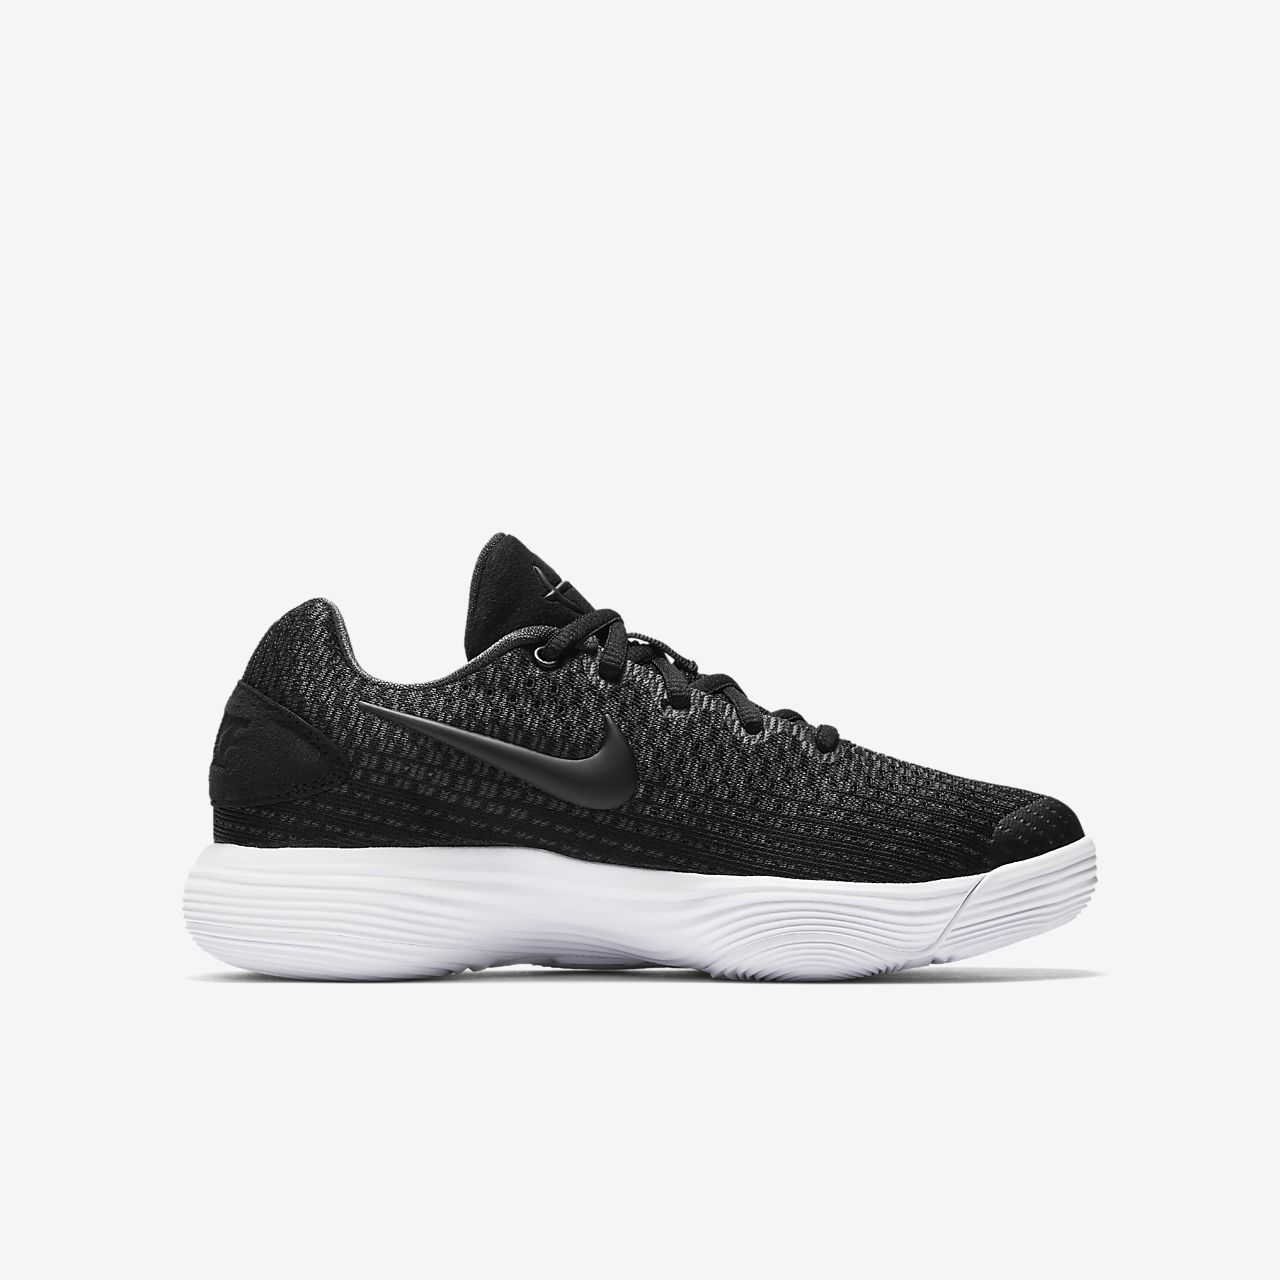 ... Chaussure de basketball Nike Hyperdunk 2017 Low pour Gar?on plus ?gé